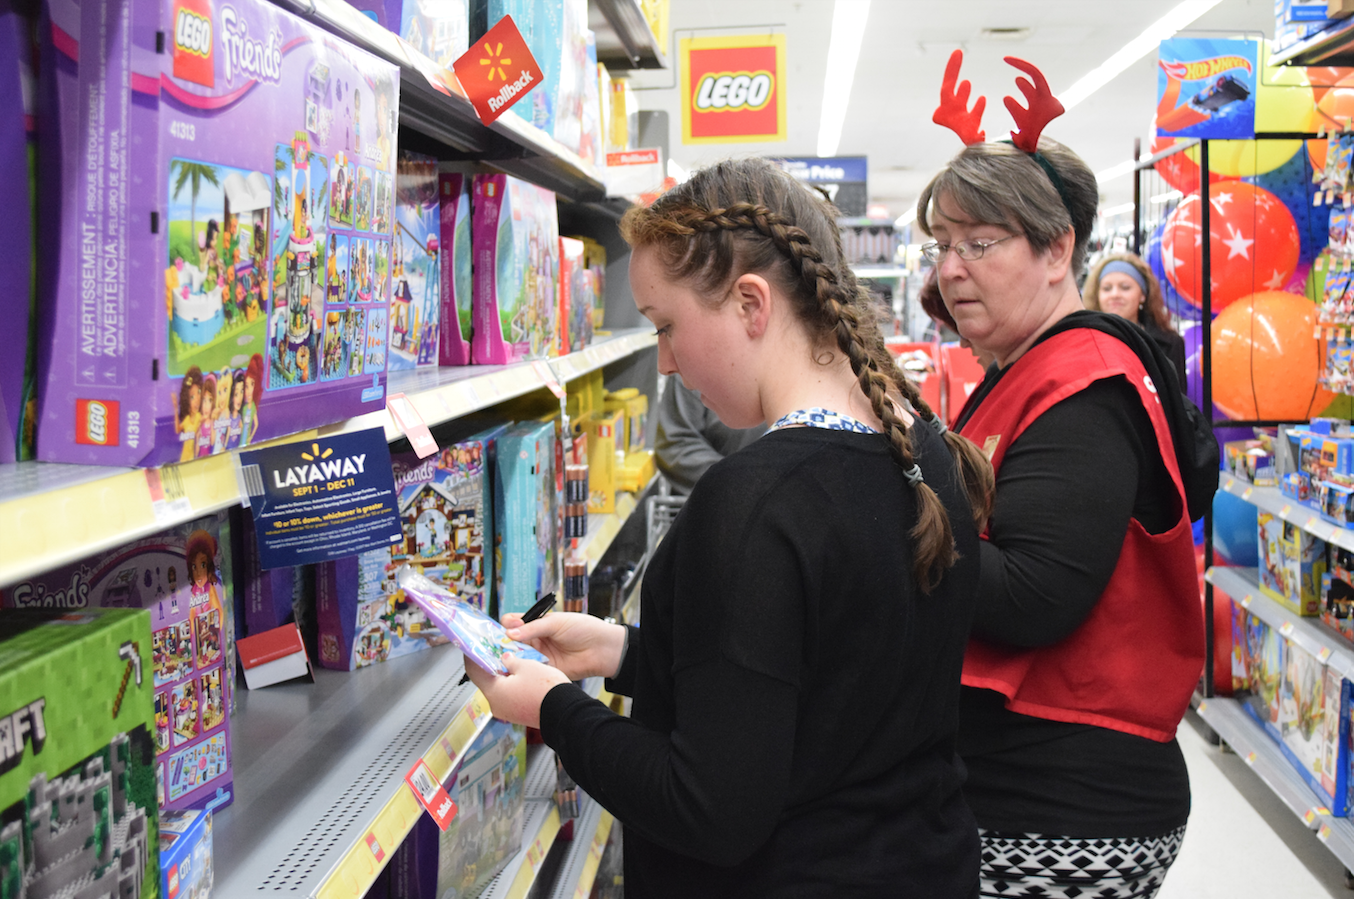 Students volunteer to help with the annual toy buy.